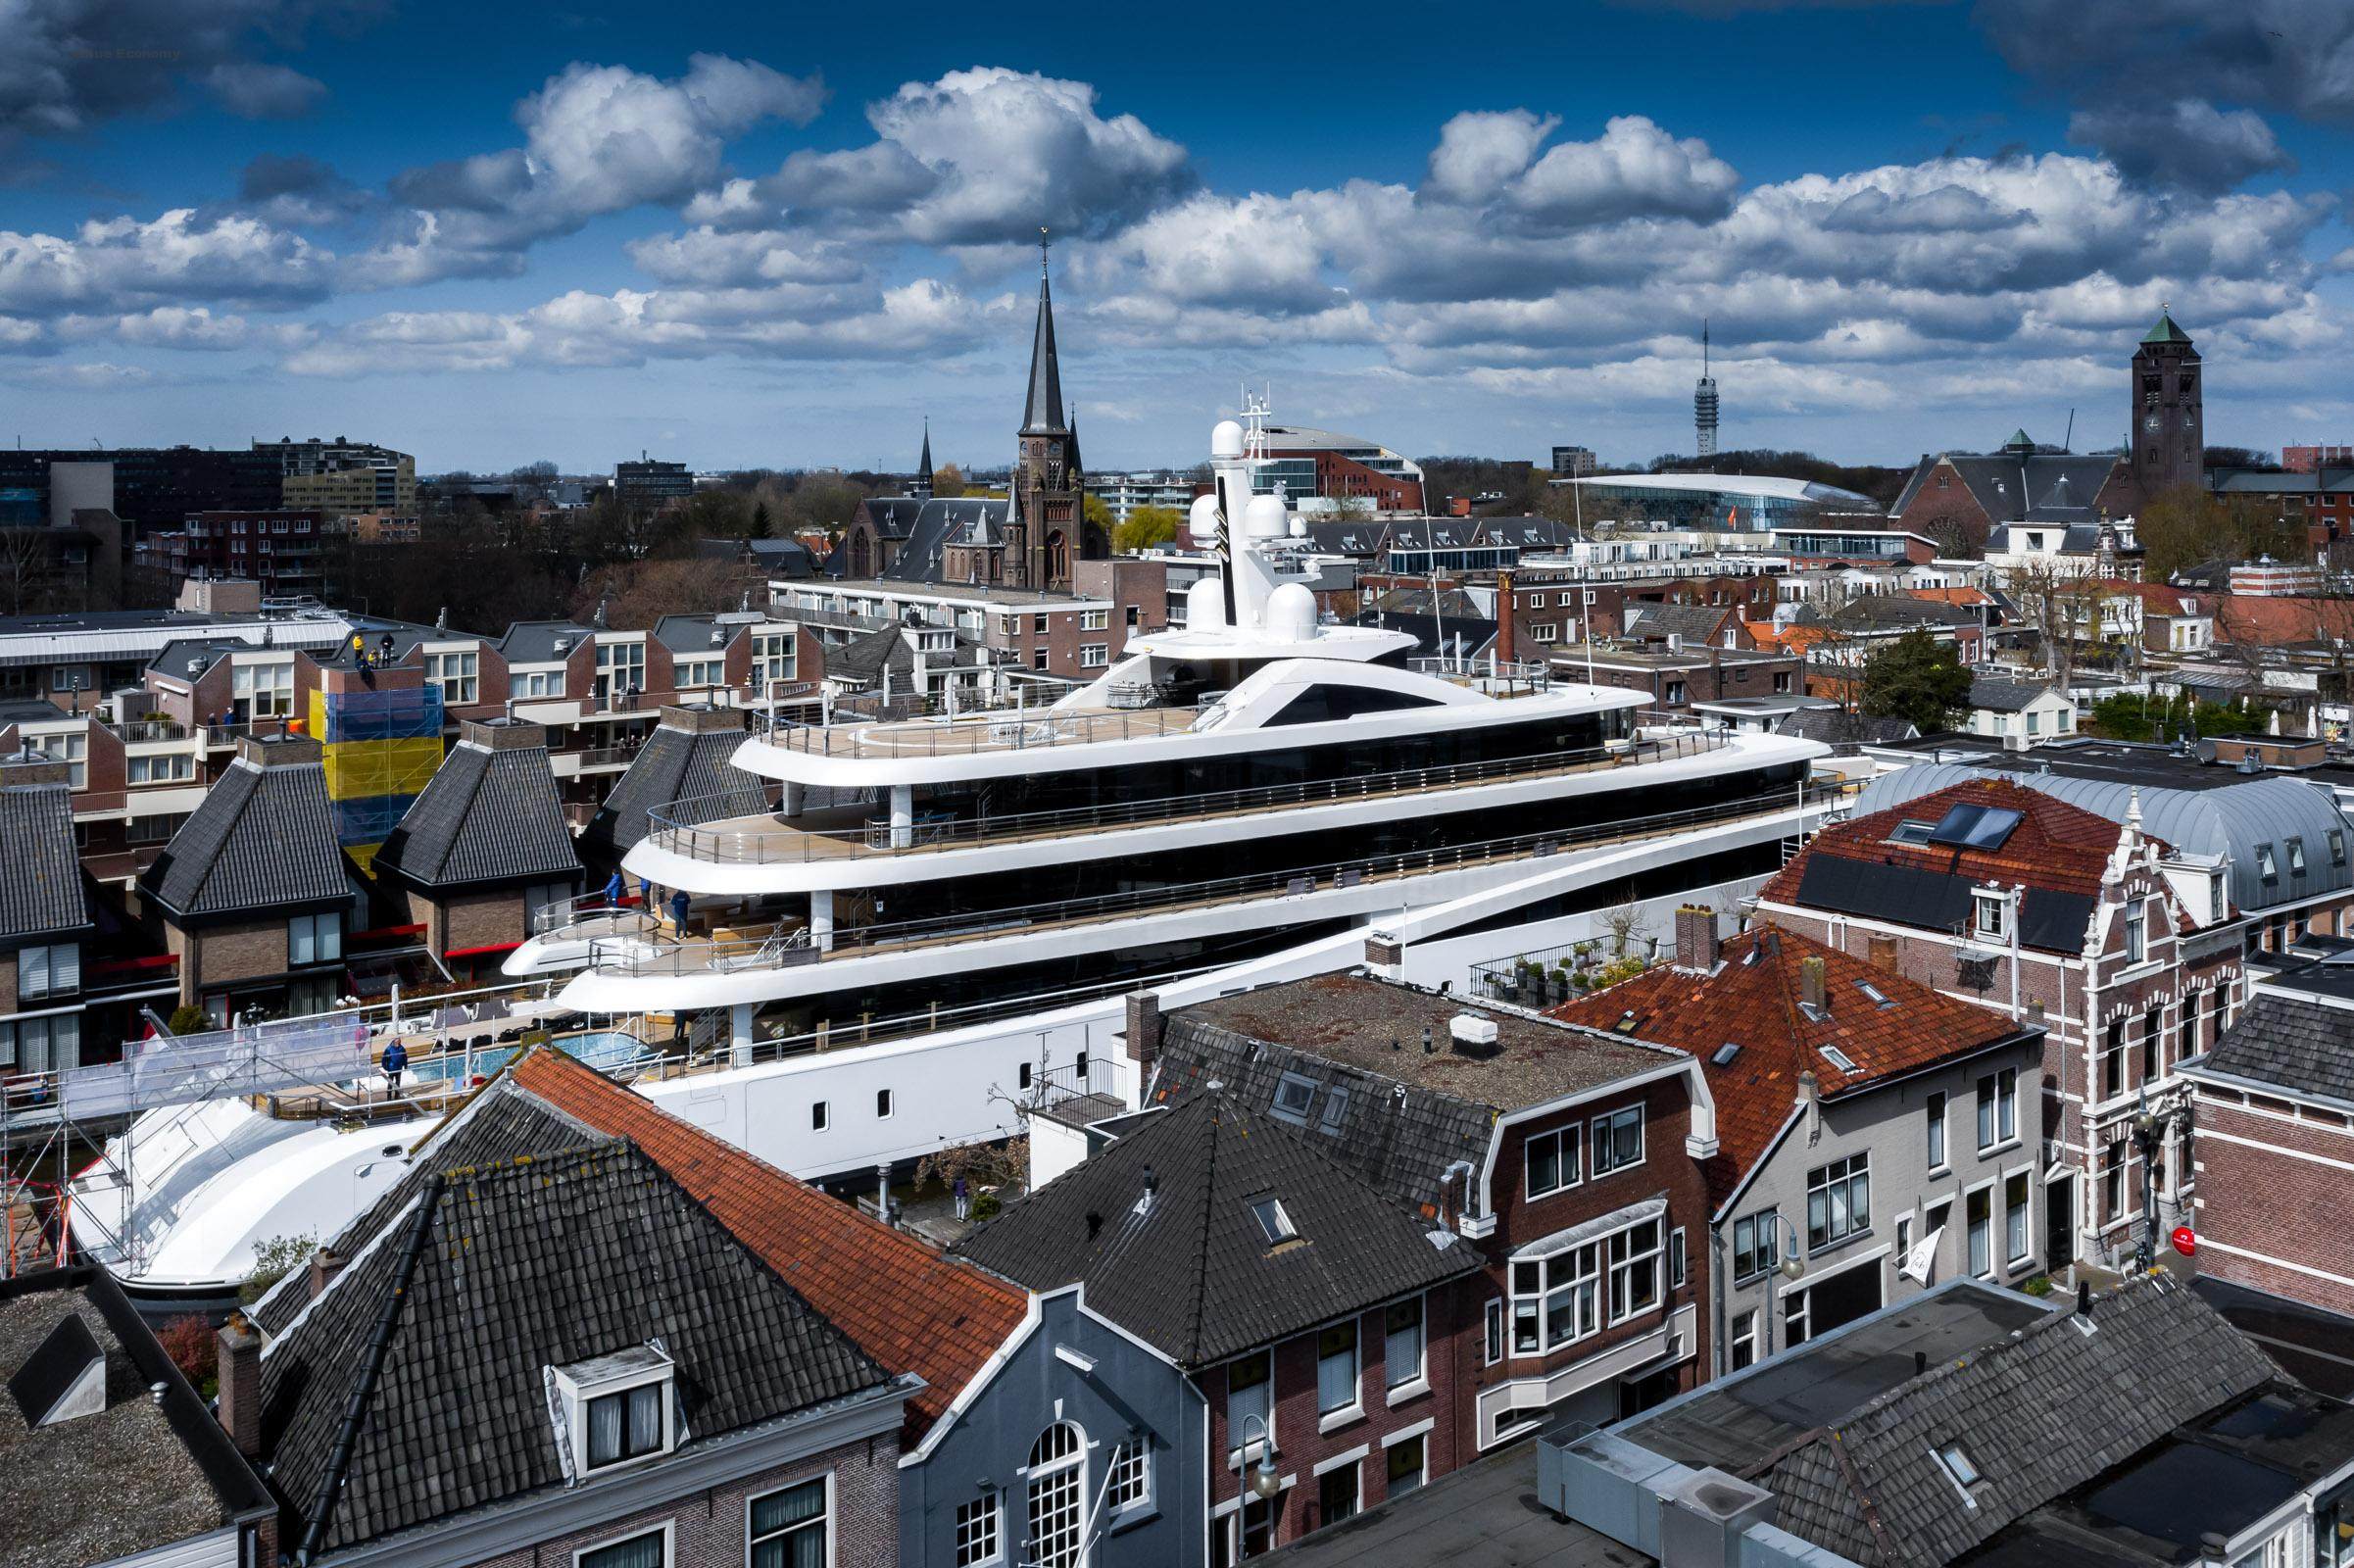 eBlue_economy_33Tight fit as huge super yacht squeezes down Dutch canals